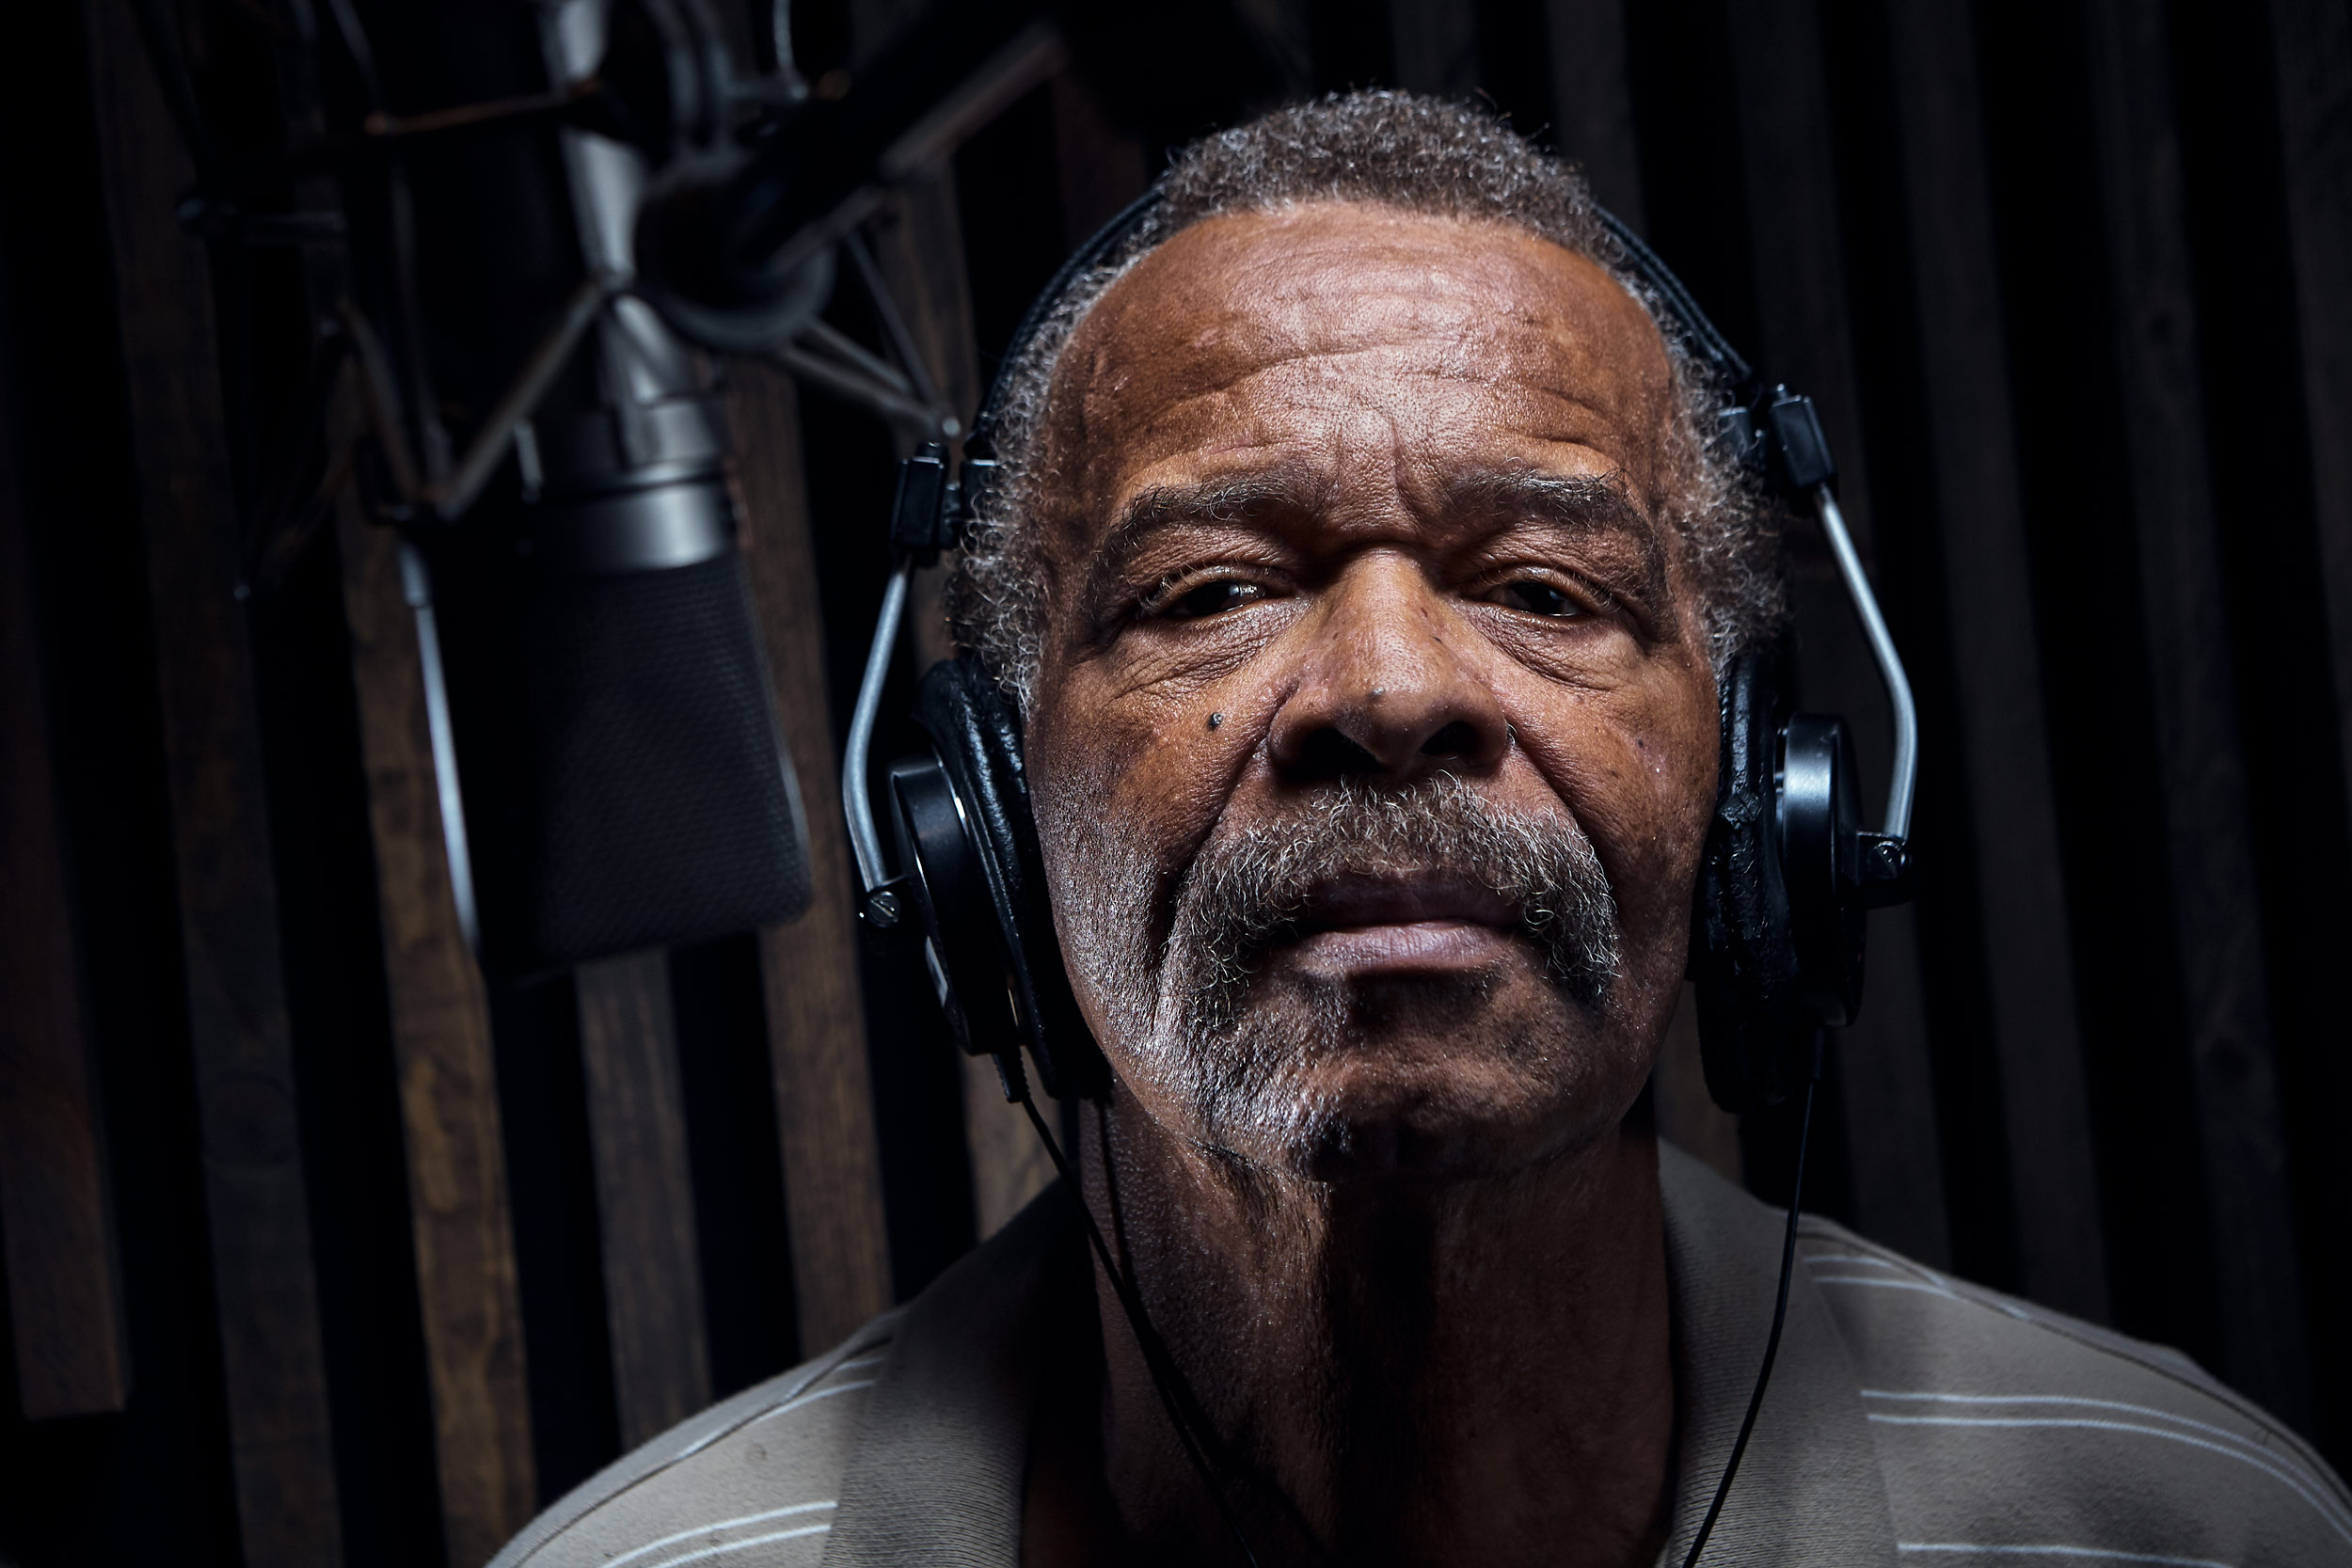 Al Johnson at recording studio, washington dc portrait photography